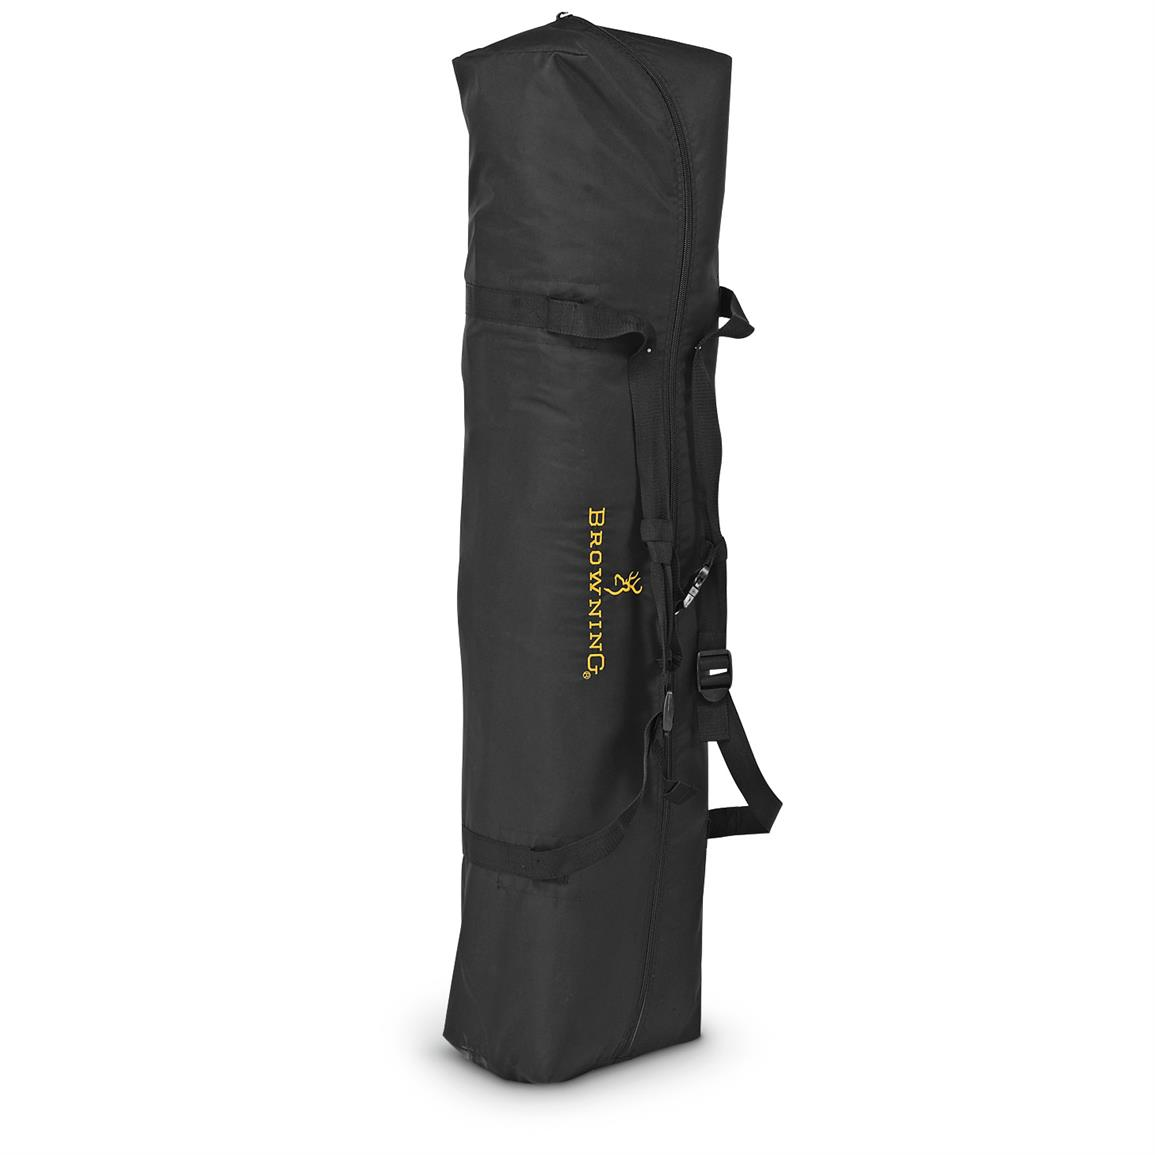 Includes custom carry bag with padded shoulder straps